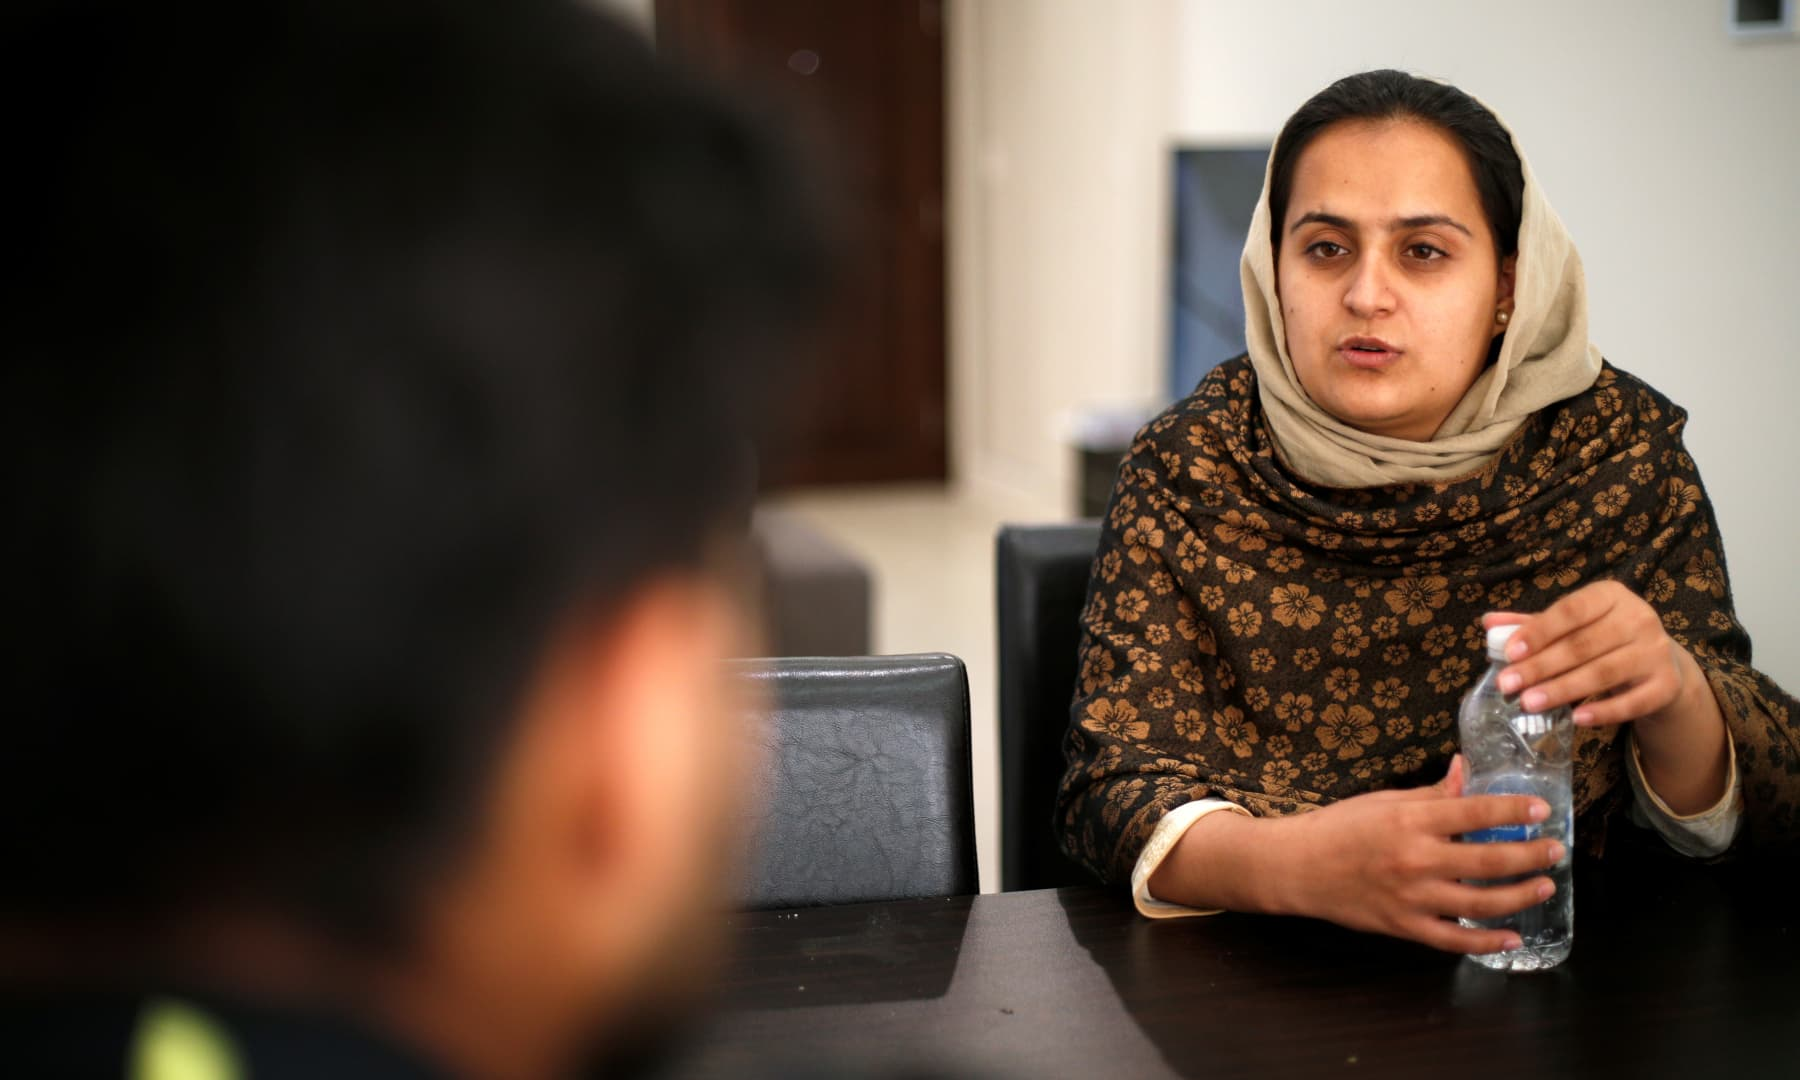 Afghan news anchor Beheshta Arghand speaks to her brother at a temporary residence compound in Doha, Qatar on September 1, 2021. — Reuters